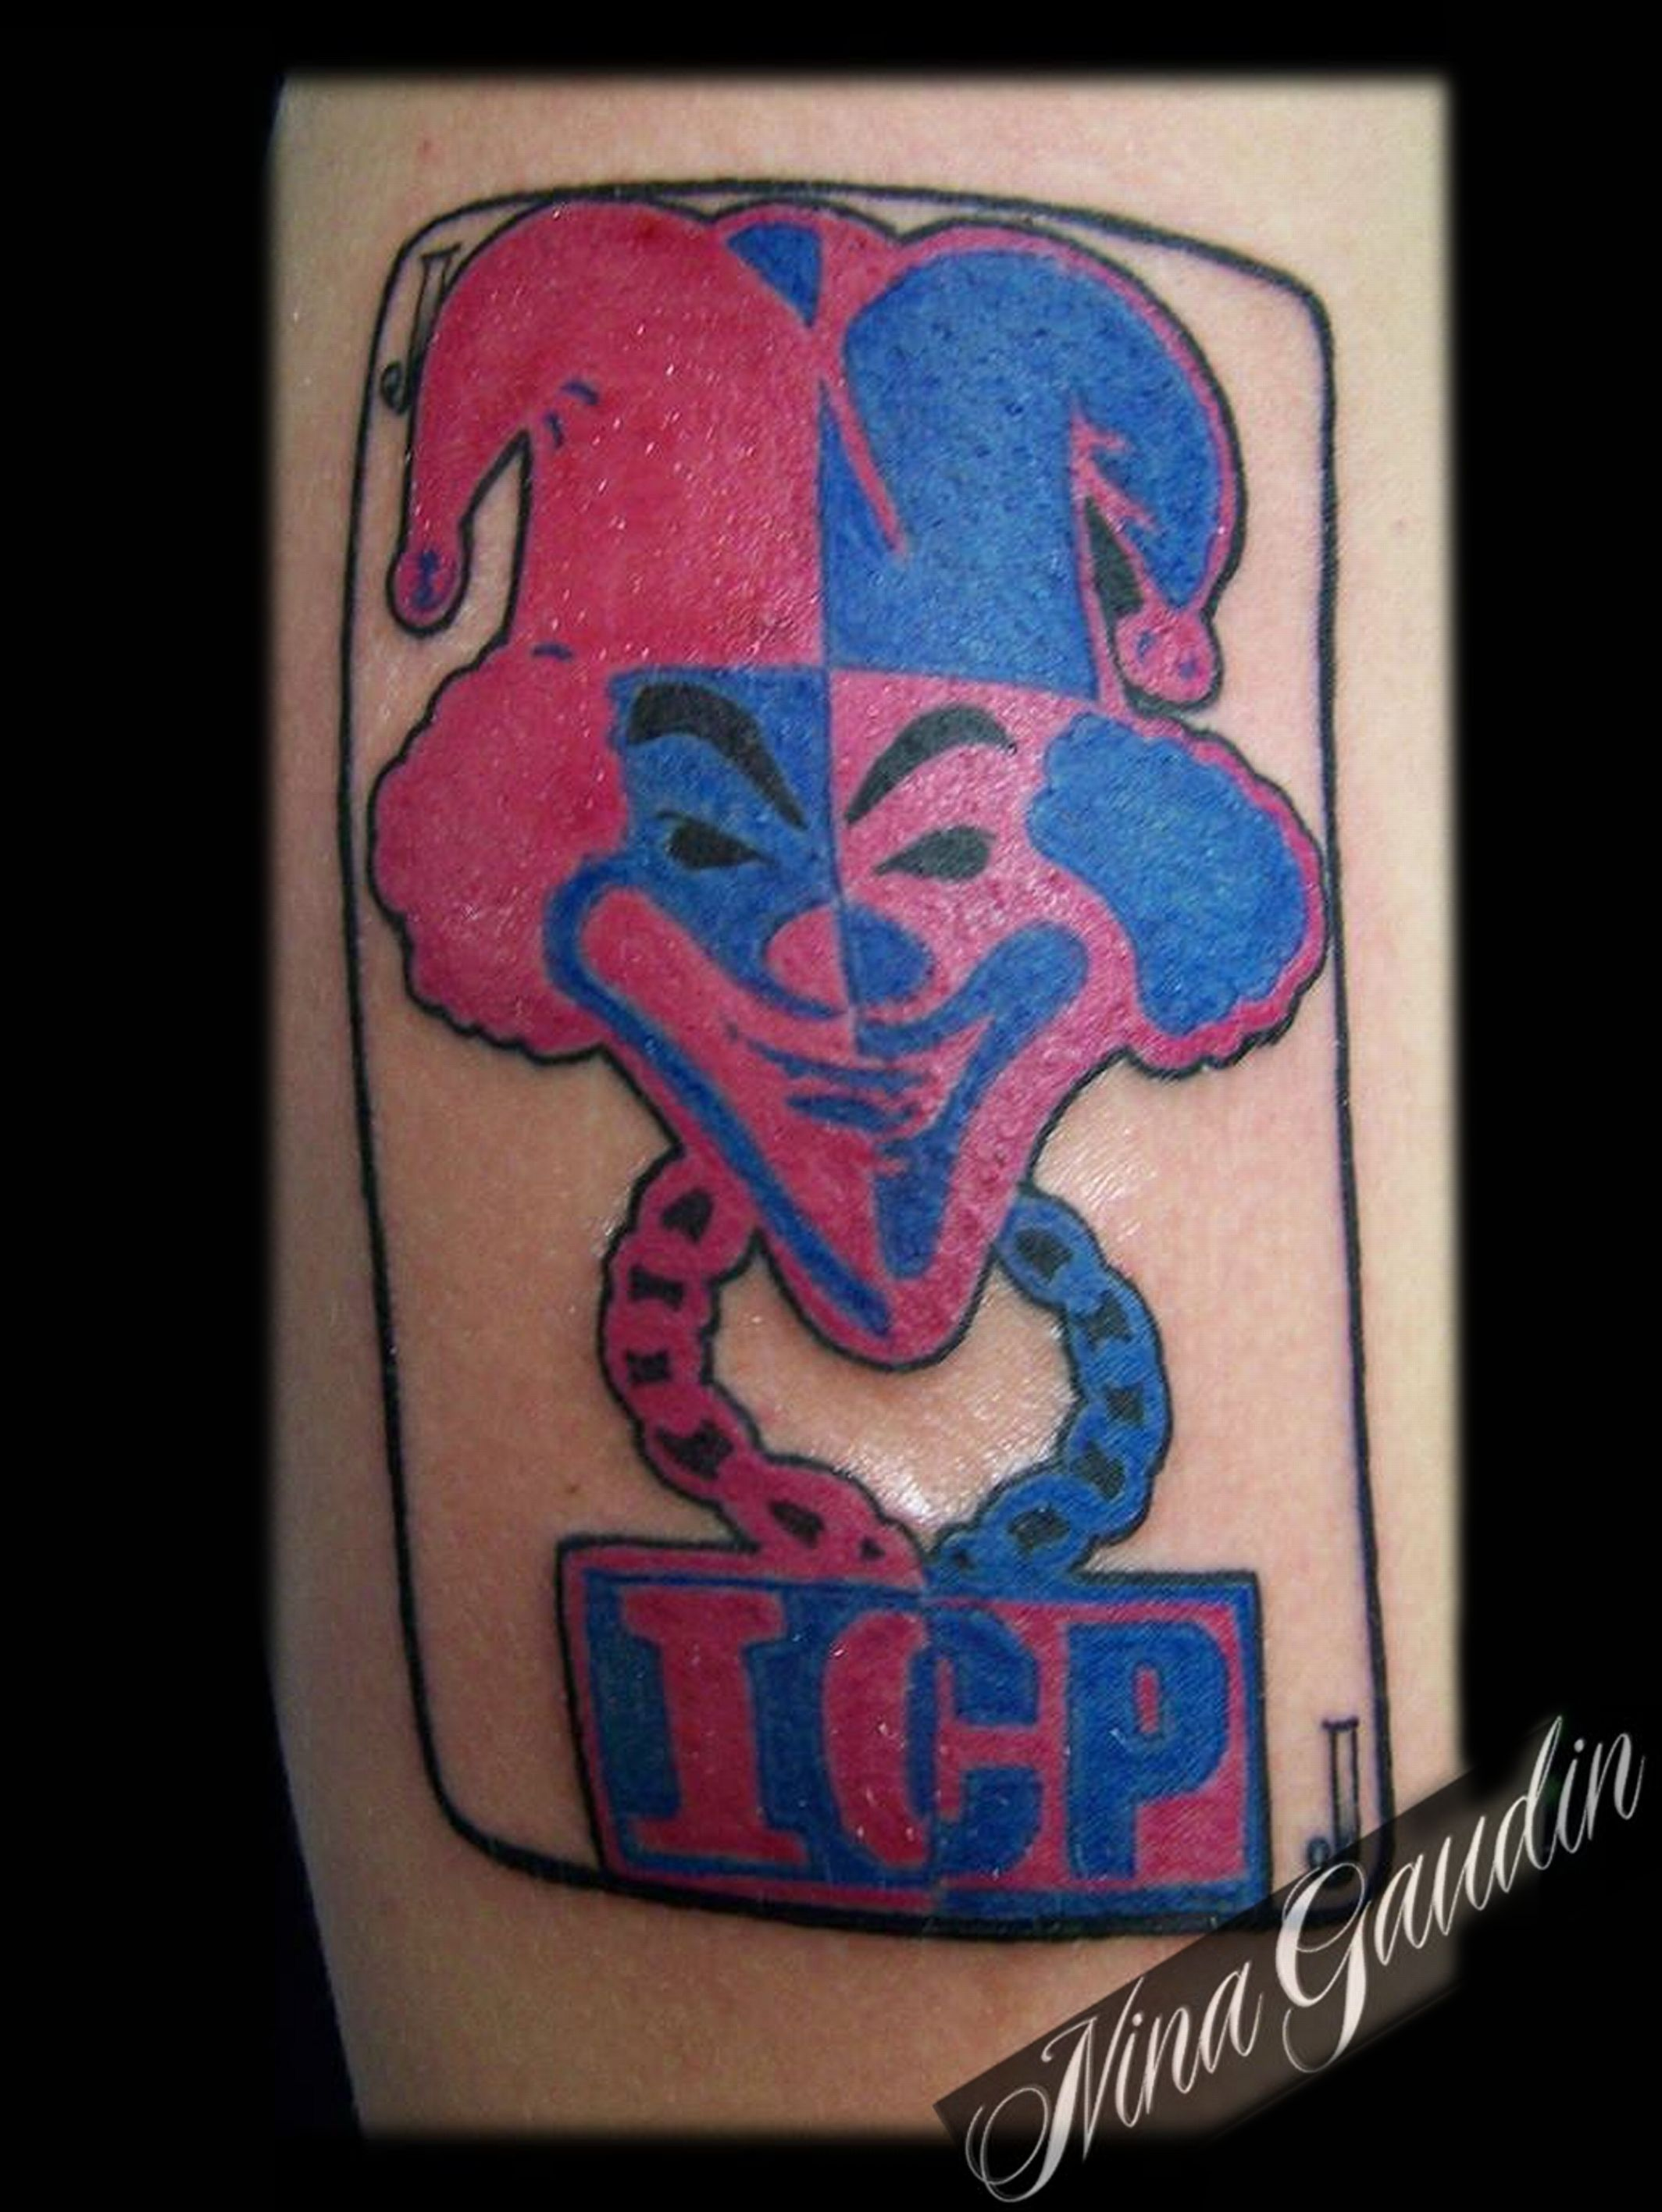 ICP Carnival of Carnage color arm - Tattoo by Nina Gaudin of 12th ...